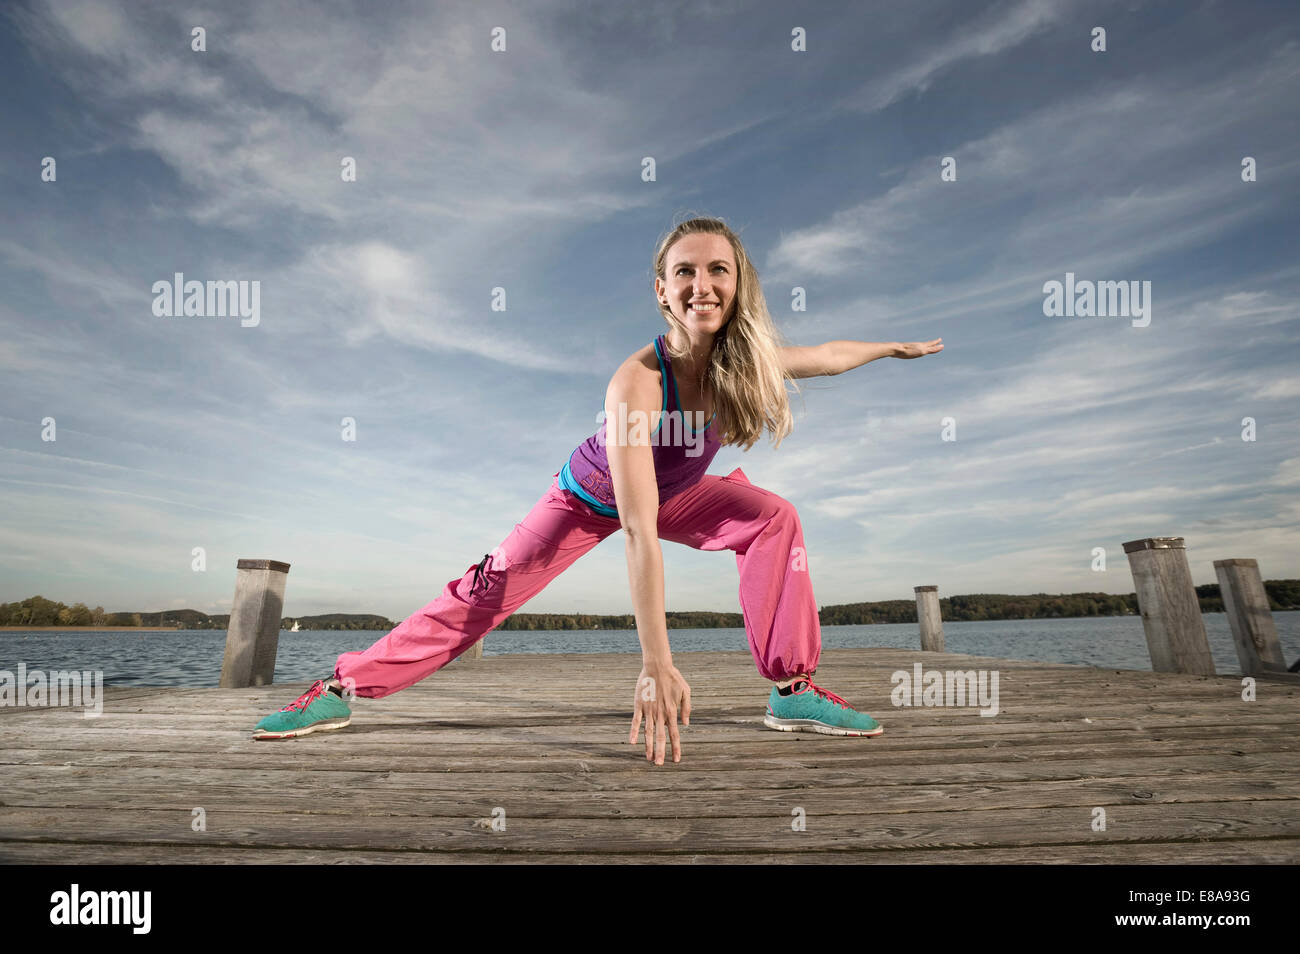 Woman dancing Zumba on jetty, Woerthsee, Bavaria, Germany - Stock Image